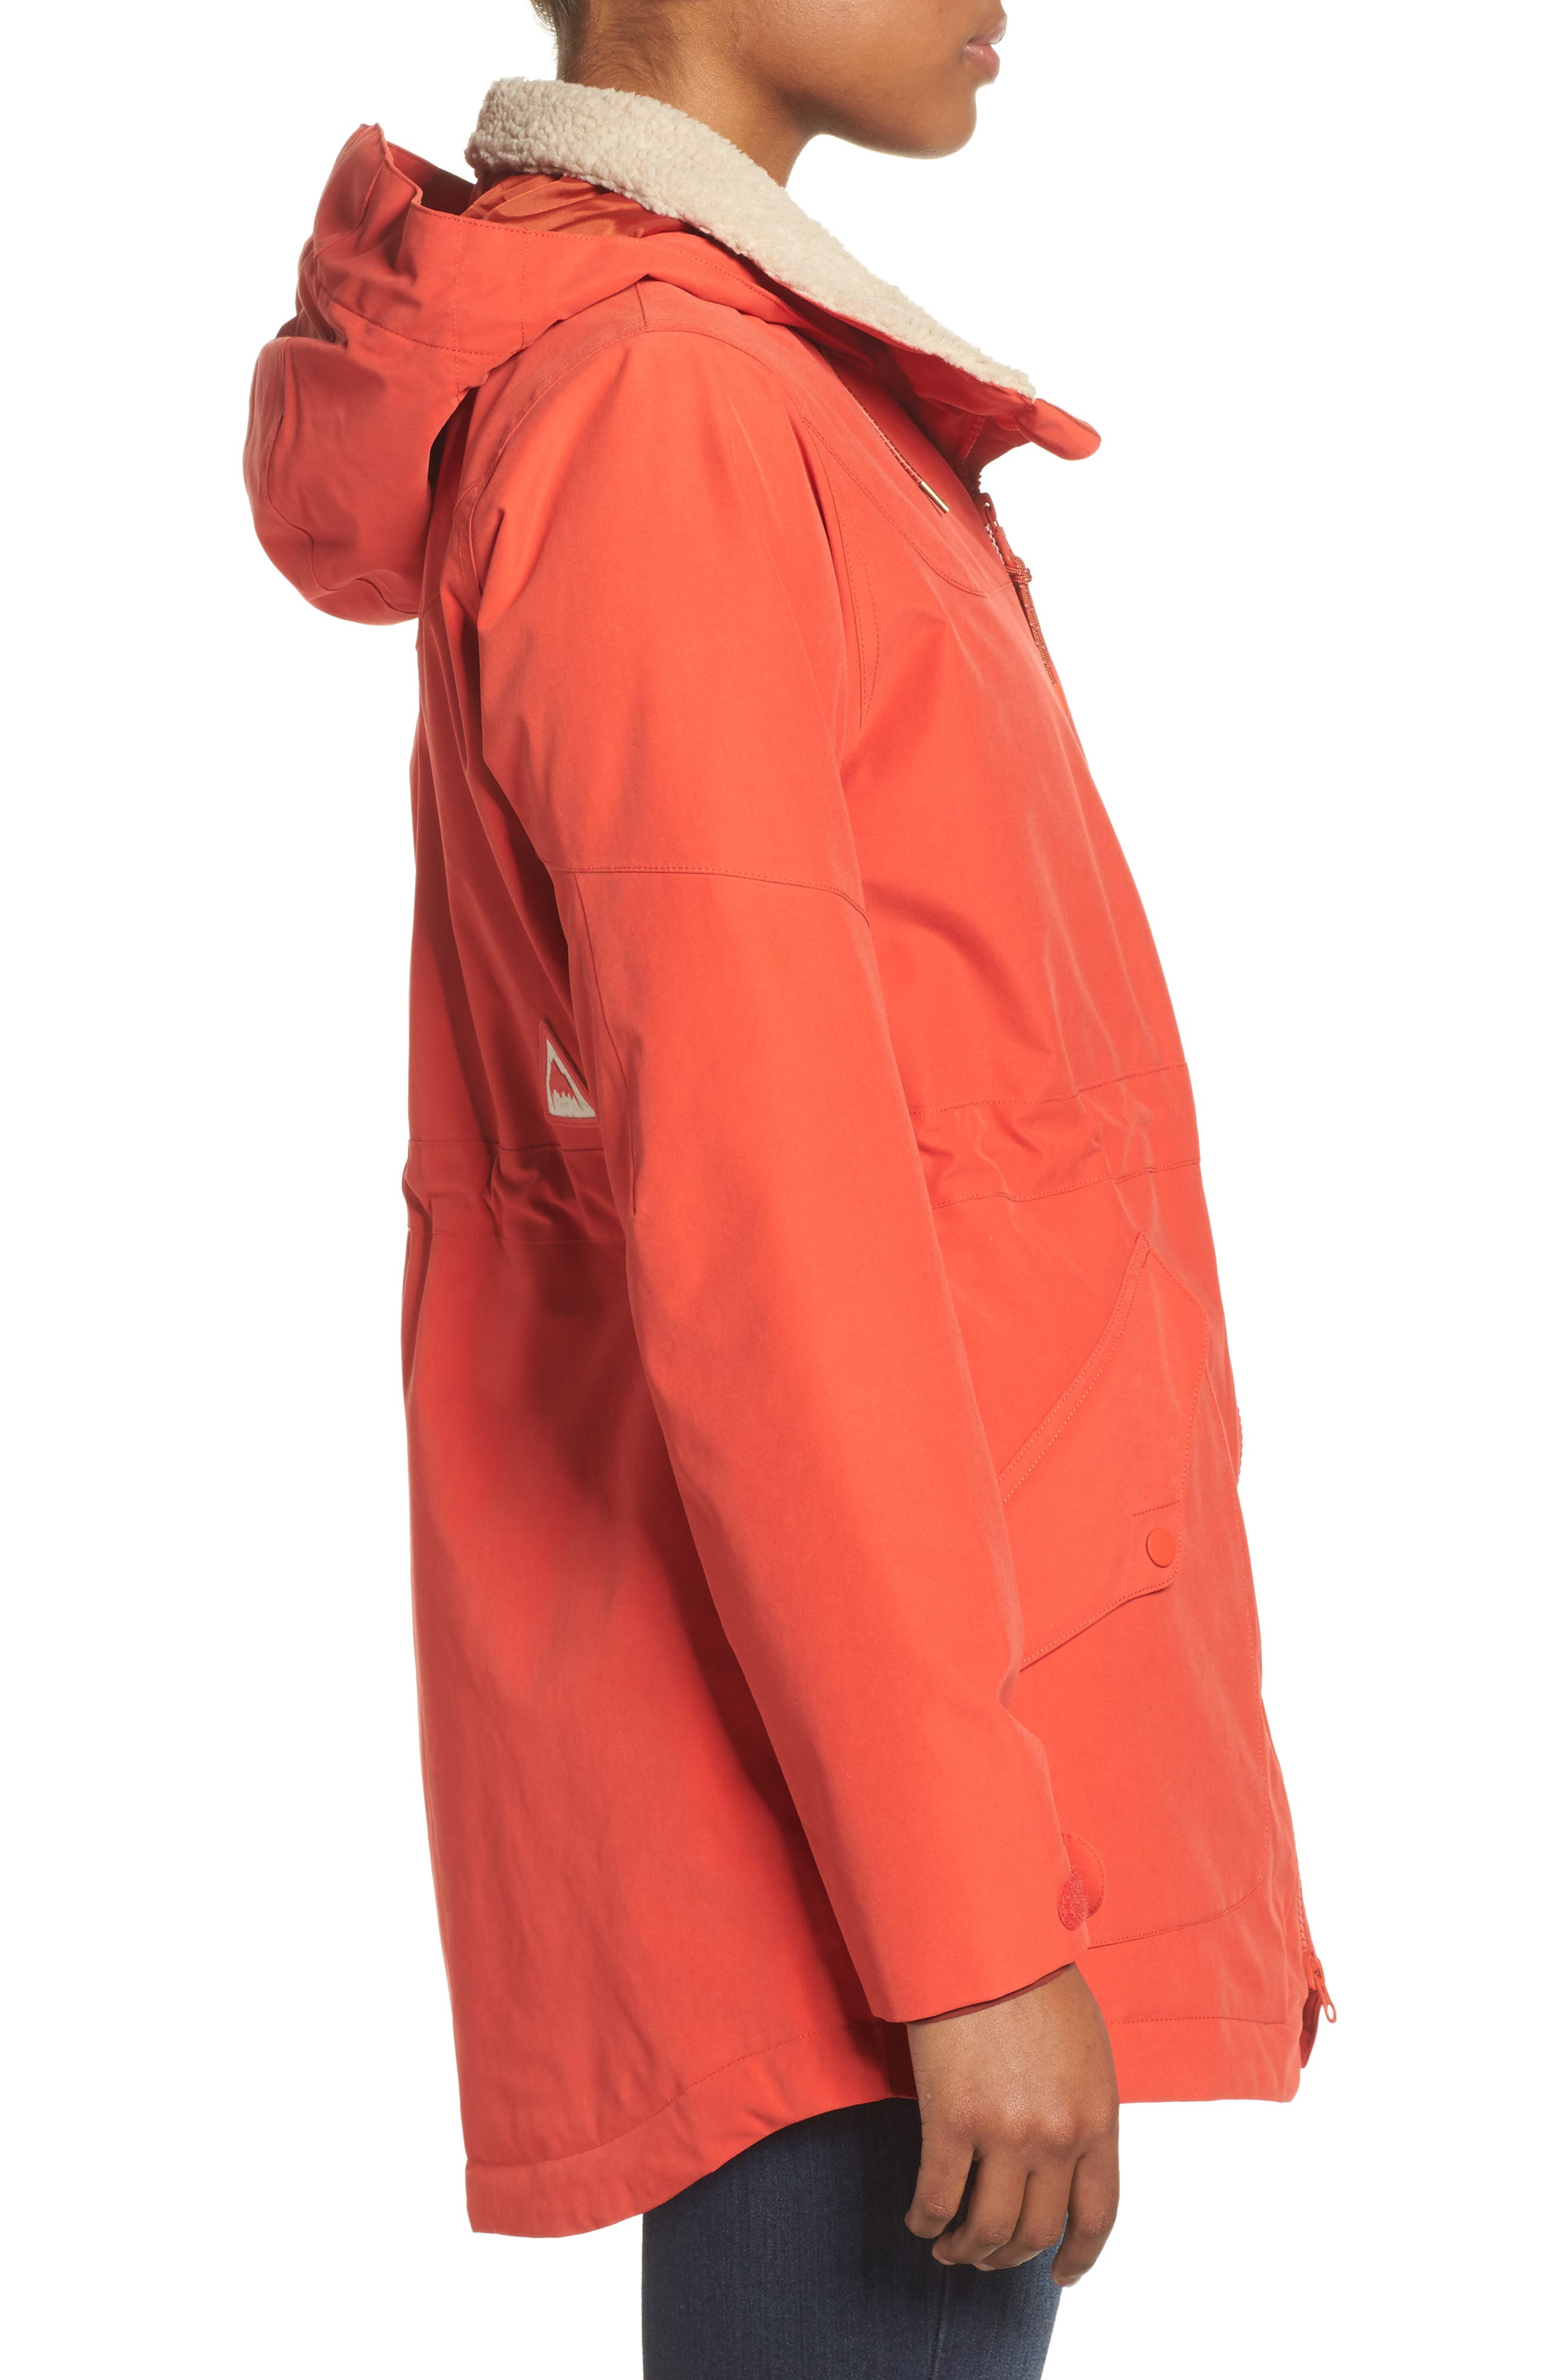 Prowess Fleece Lined Water Resistant Jacket,                             Alternate thumbnail 3, color,                             FIERY RED SUEDED